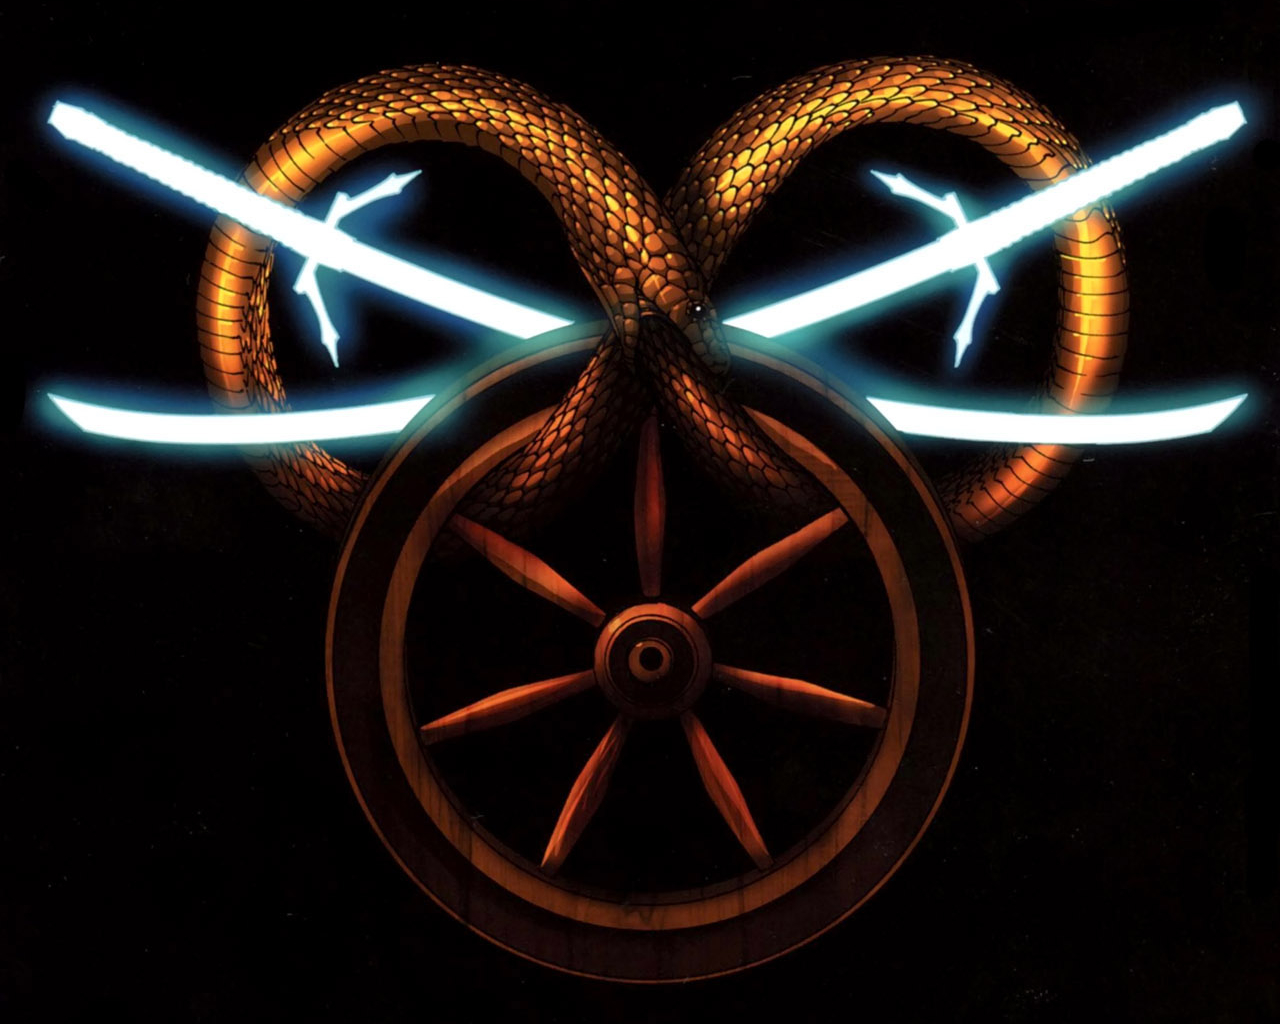 wheel of time The HD Wallpaper